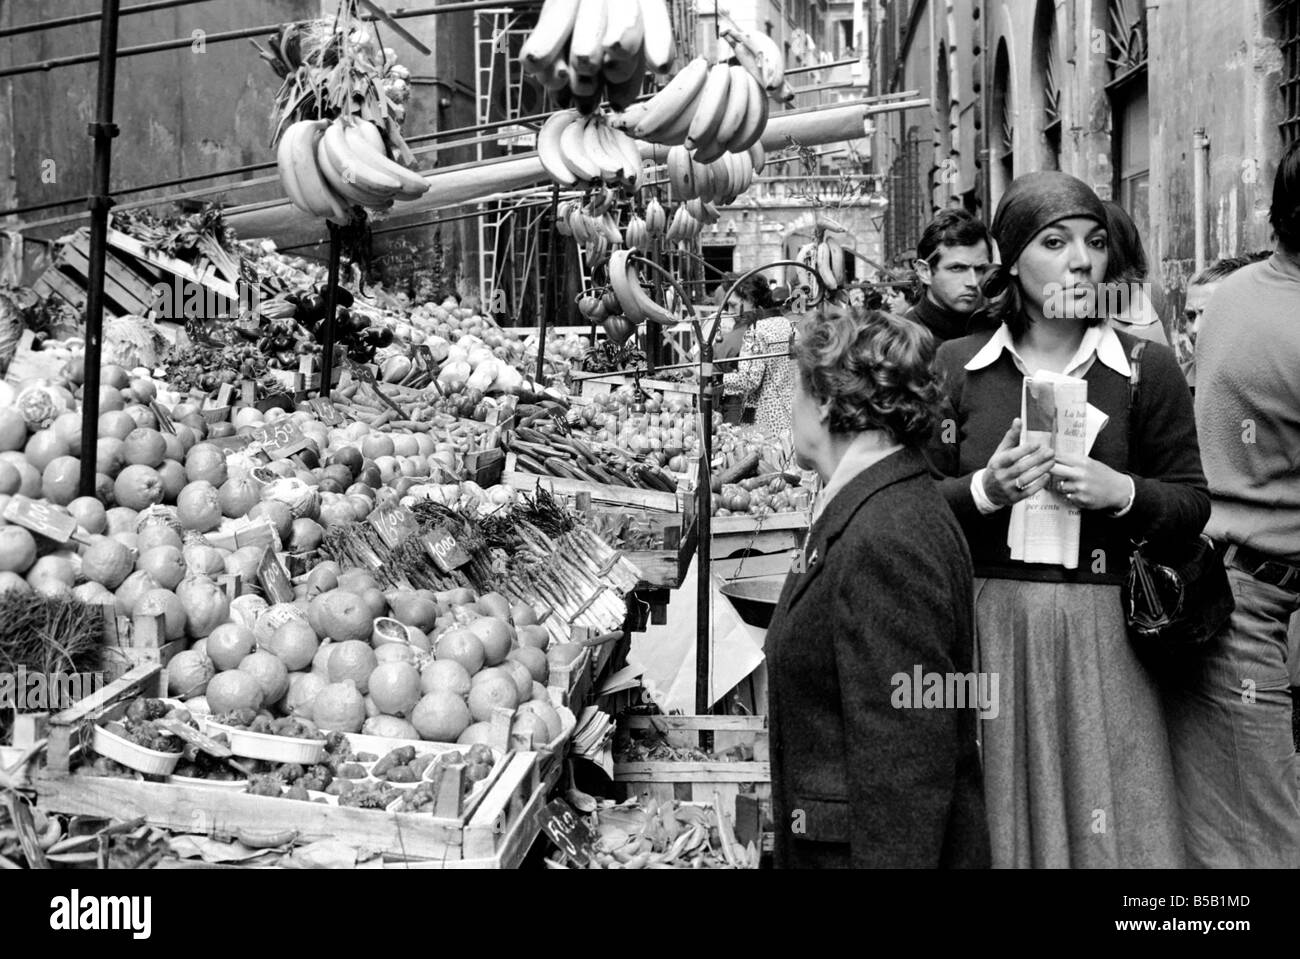 Woman buying fresh fruit and vegetables in a poor suburb on the outskirts of Rome, Italy